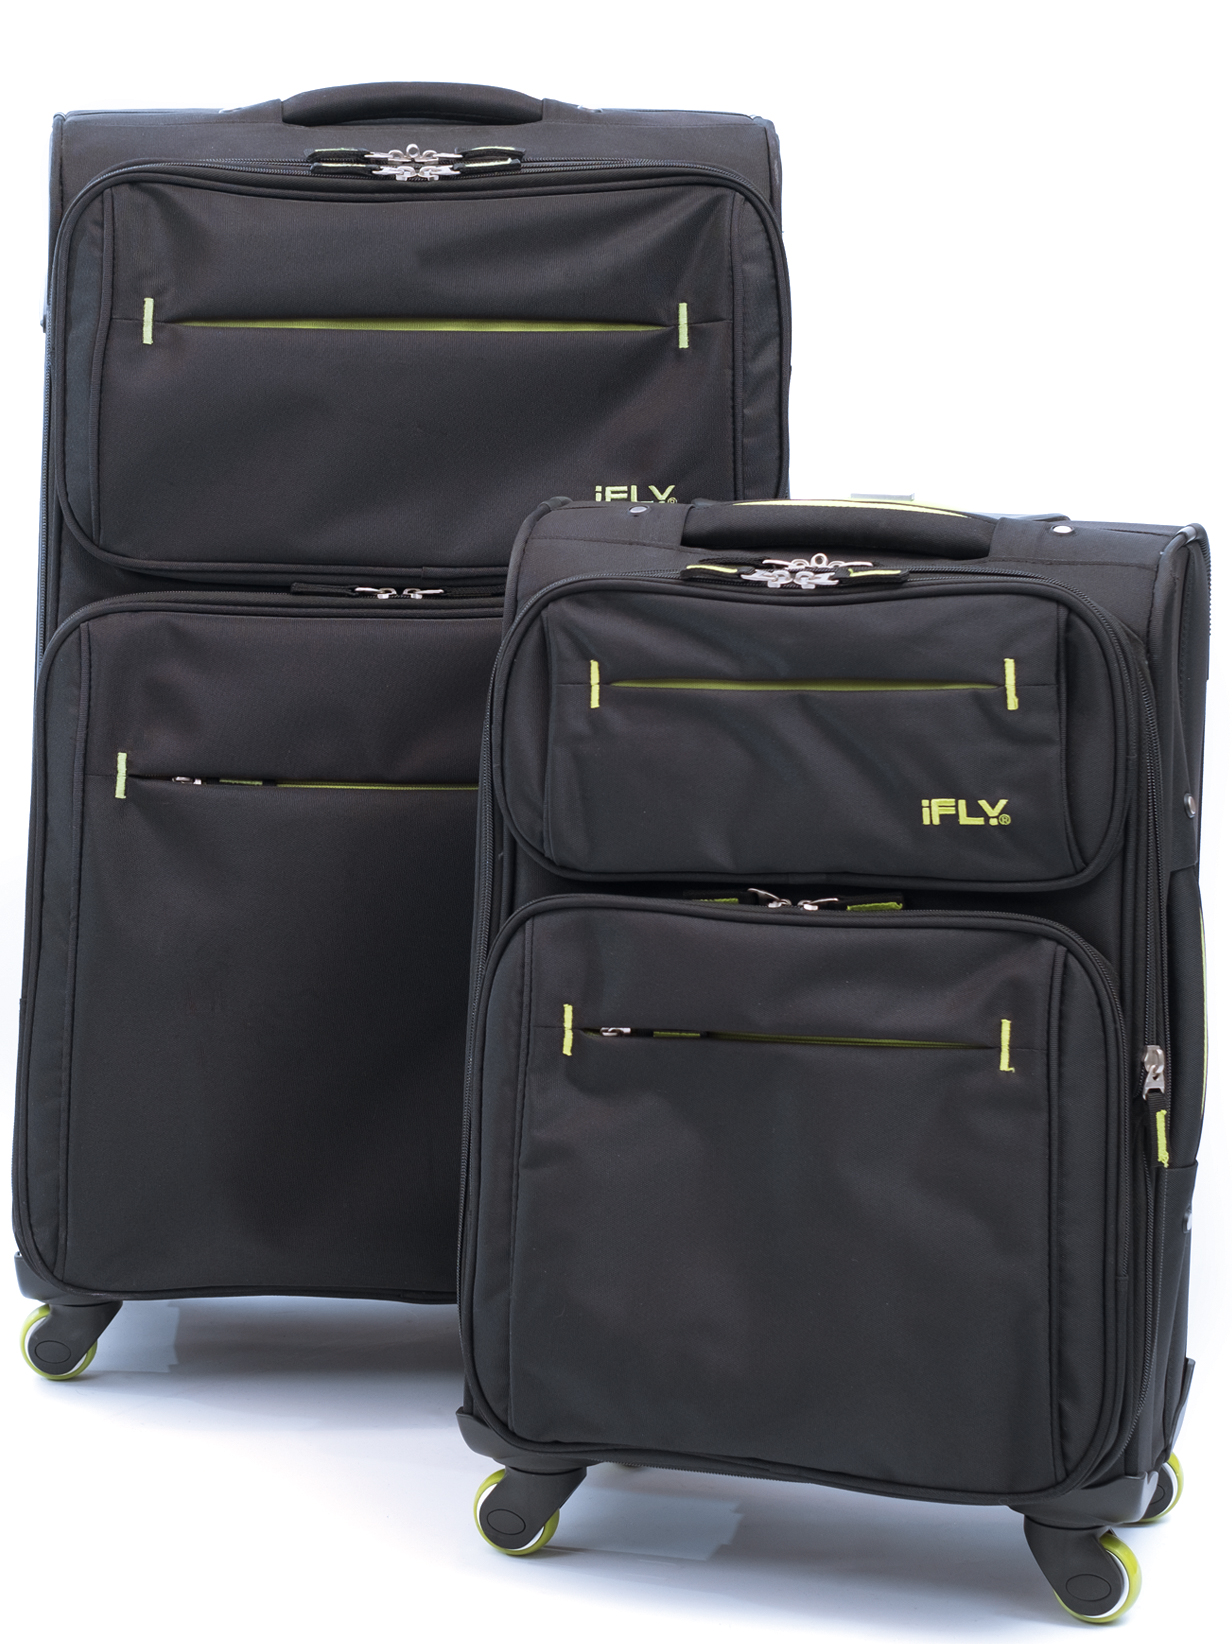 iFLY Soft Sided Luggage Accent 2 pcs set, Black/Green